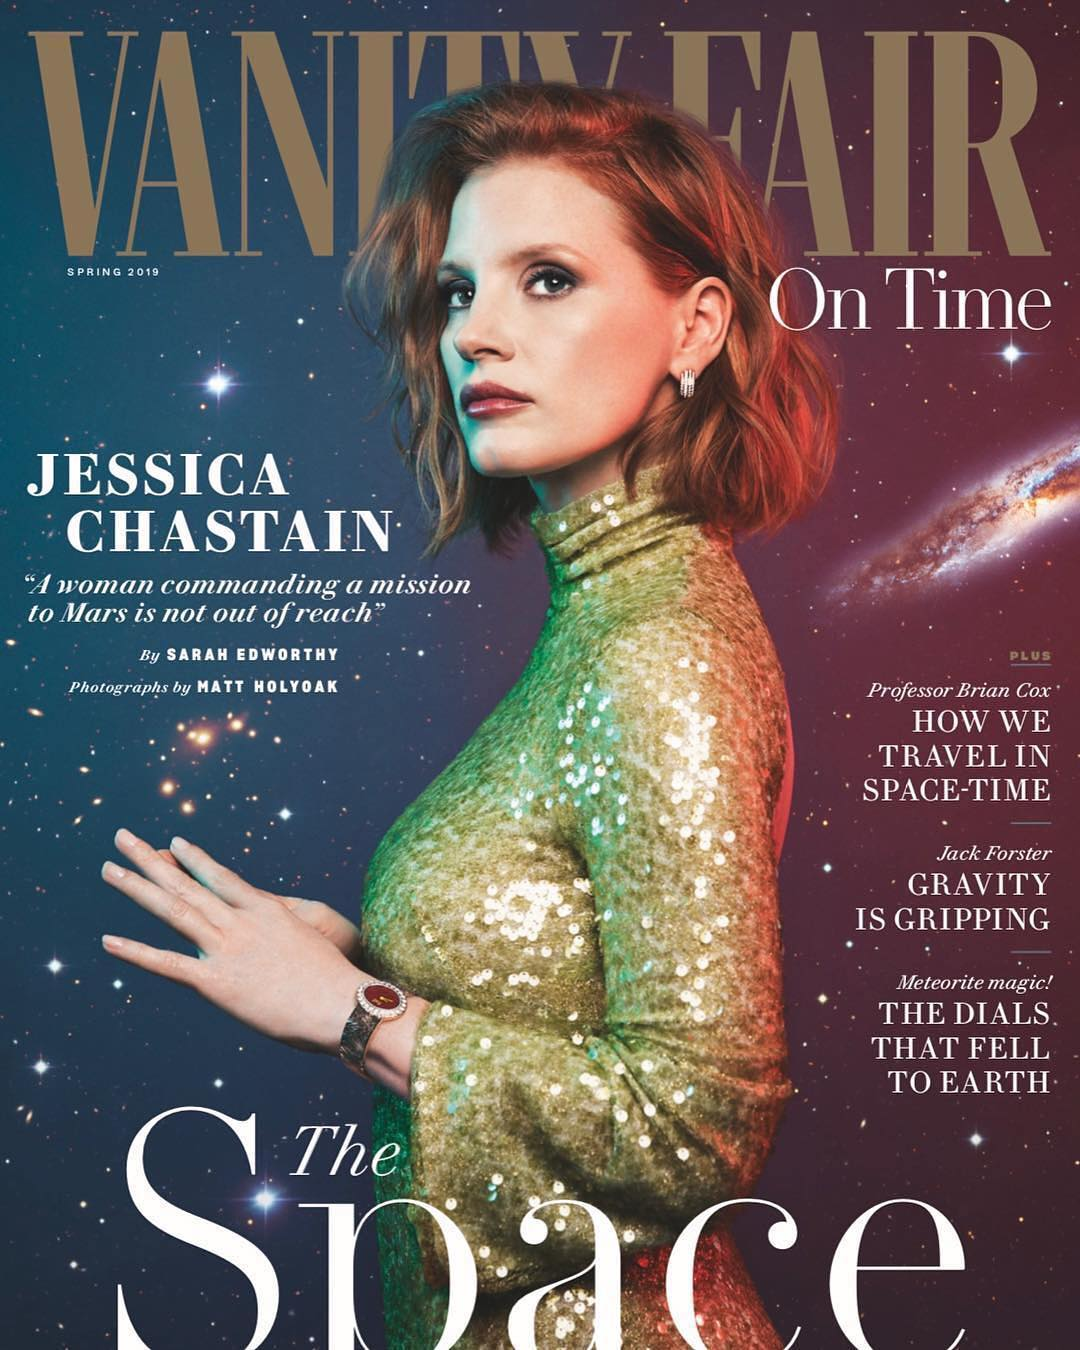 Jessica Chastain On The Cover Page Of Vanity Fair - Spring 2019 1